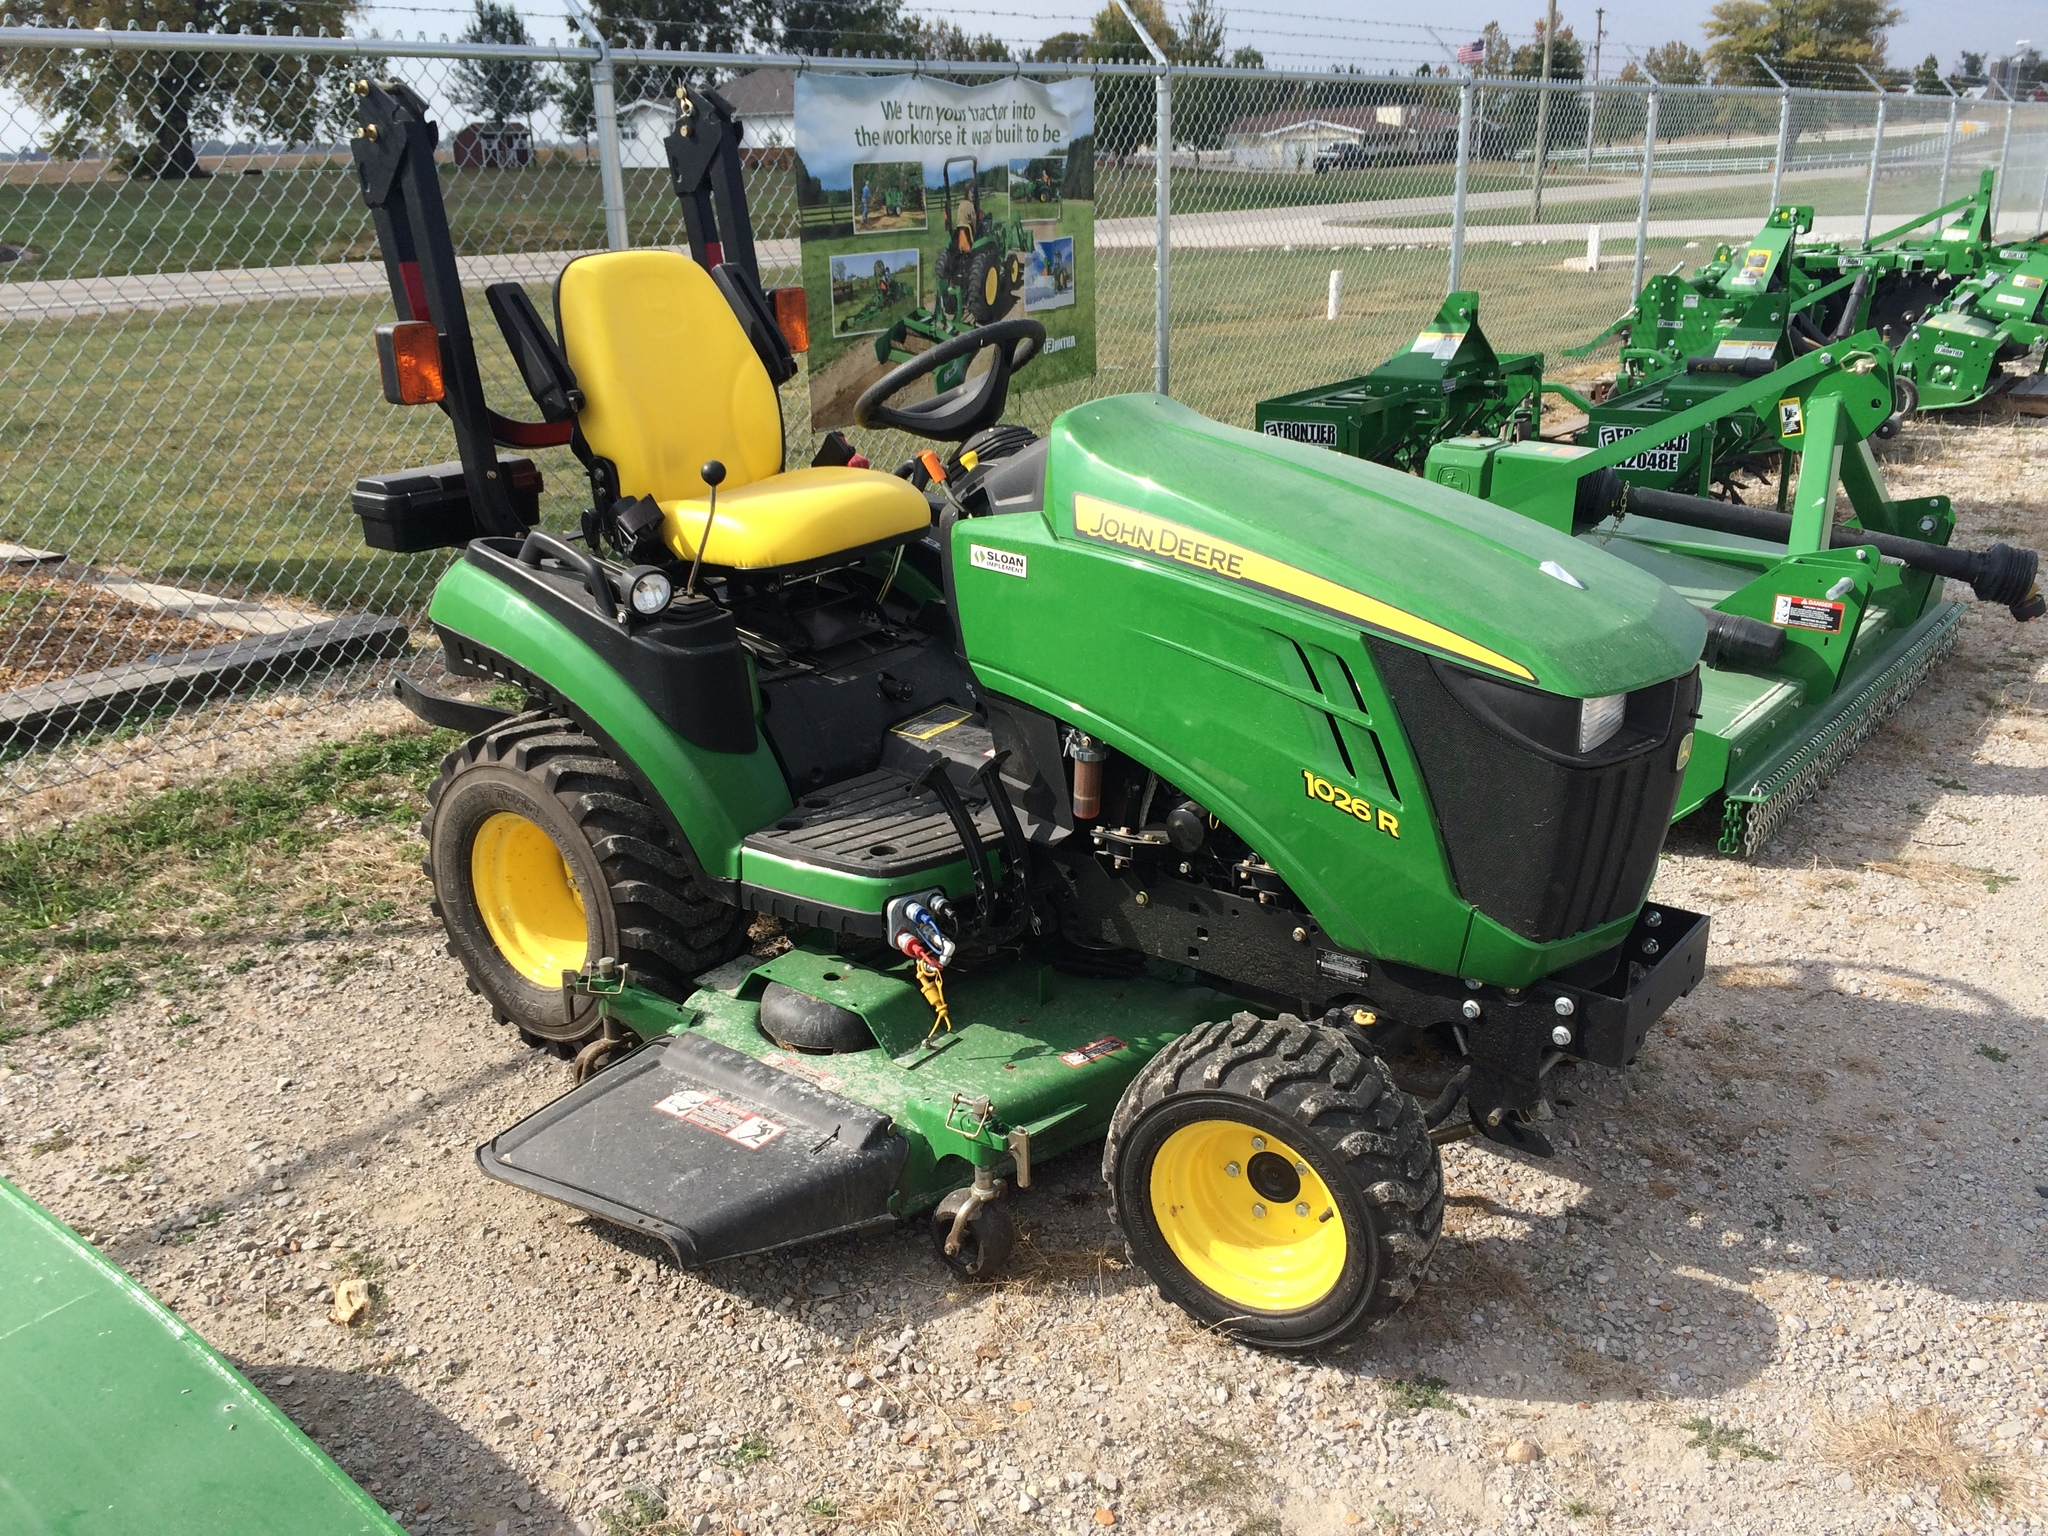 John Deere 1026r Attachments : John deere r compact utility tractors for sale